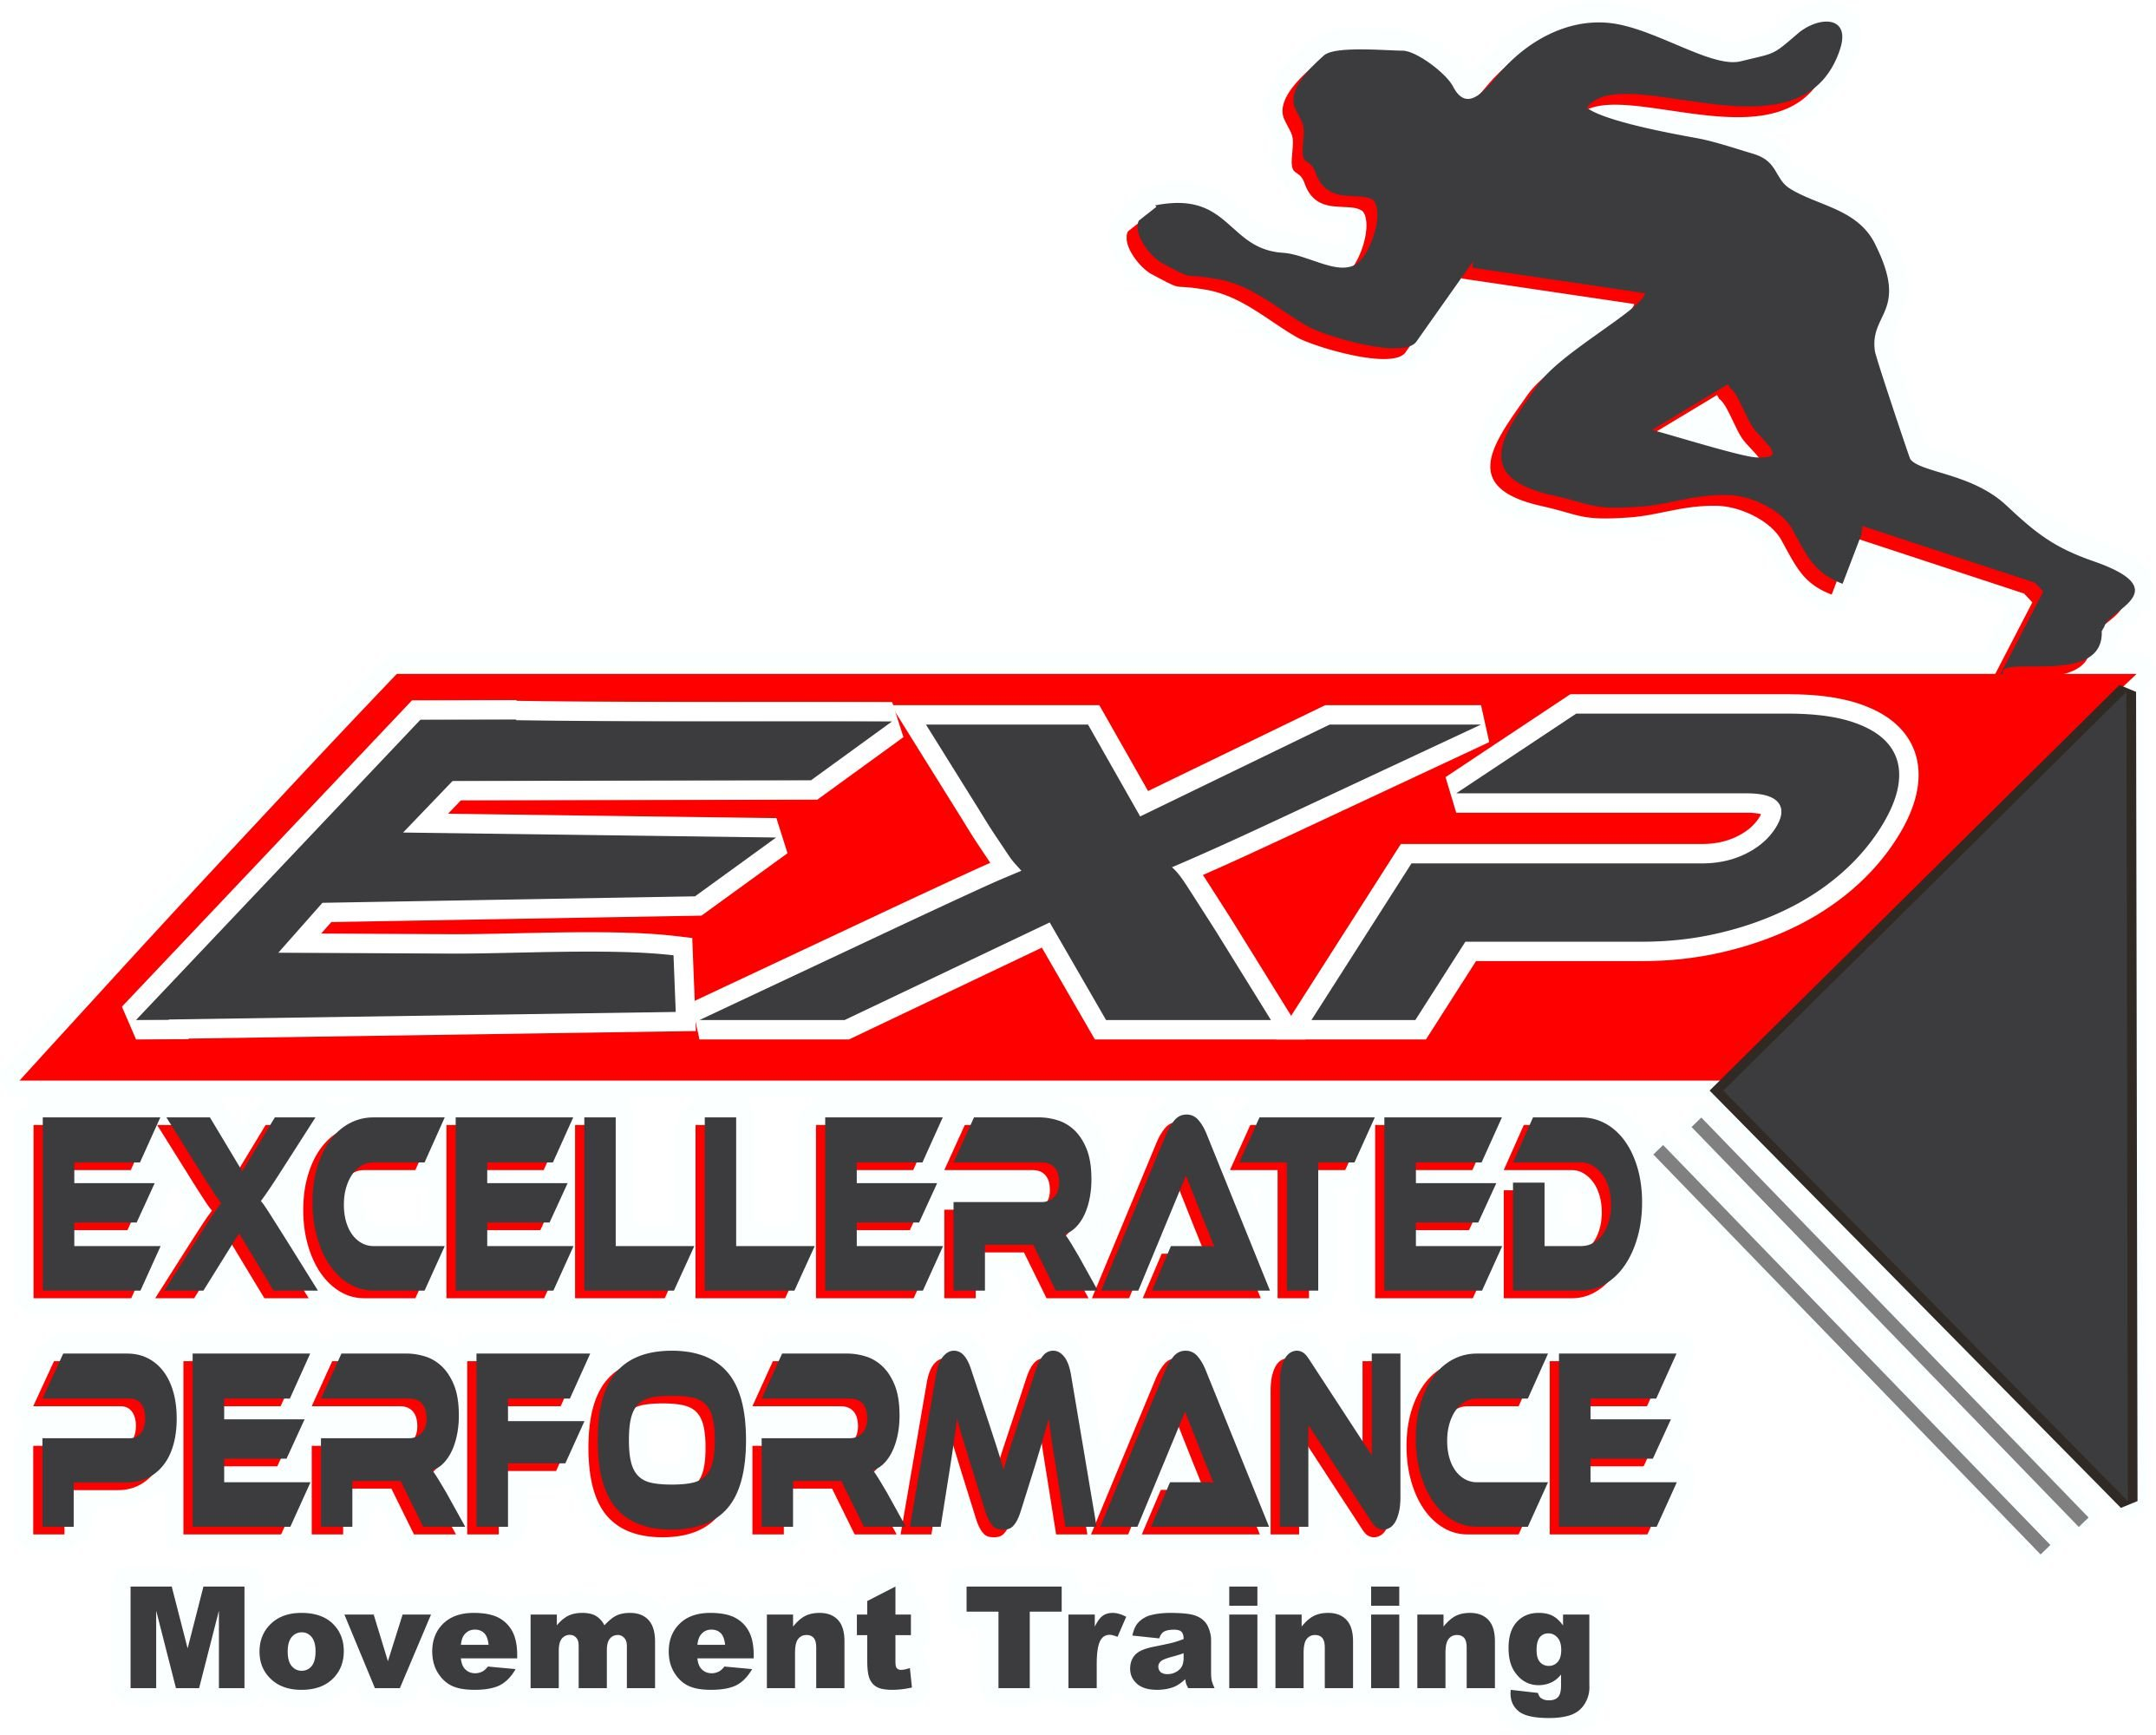 Excellerated Performance